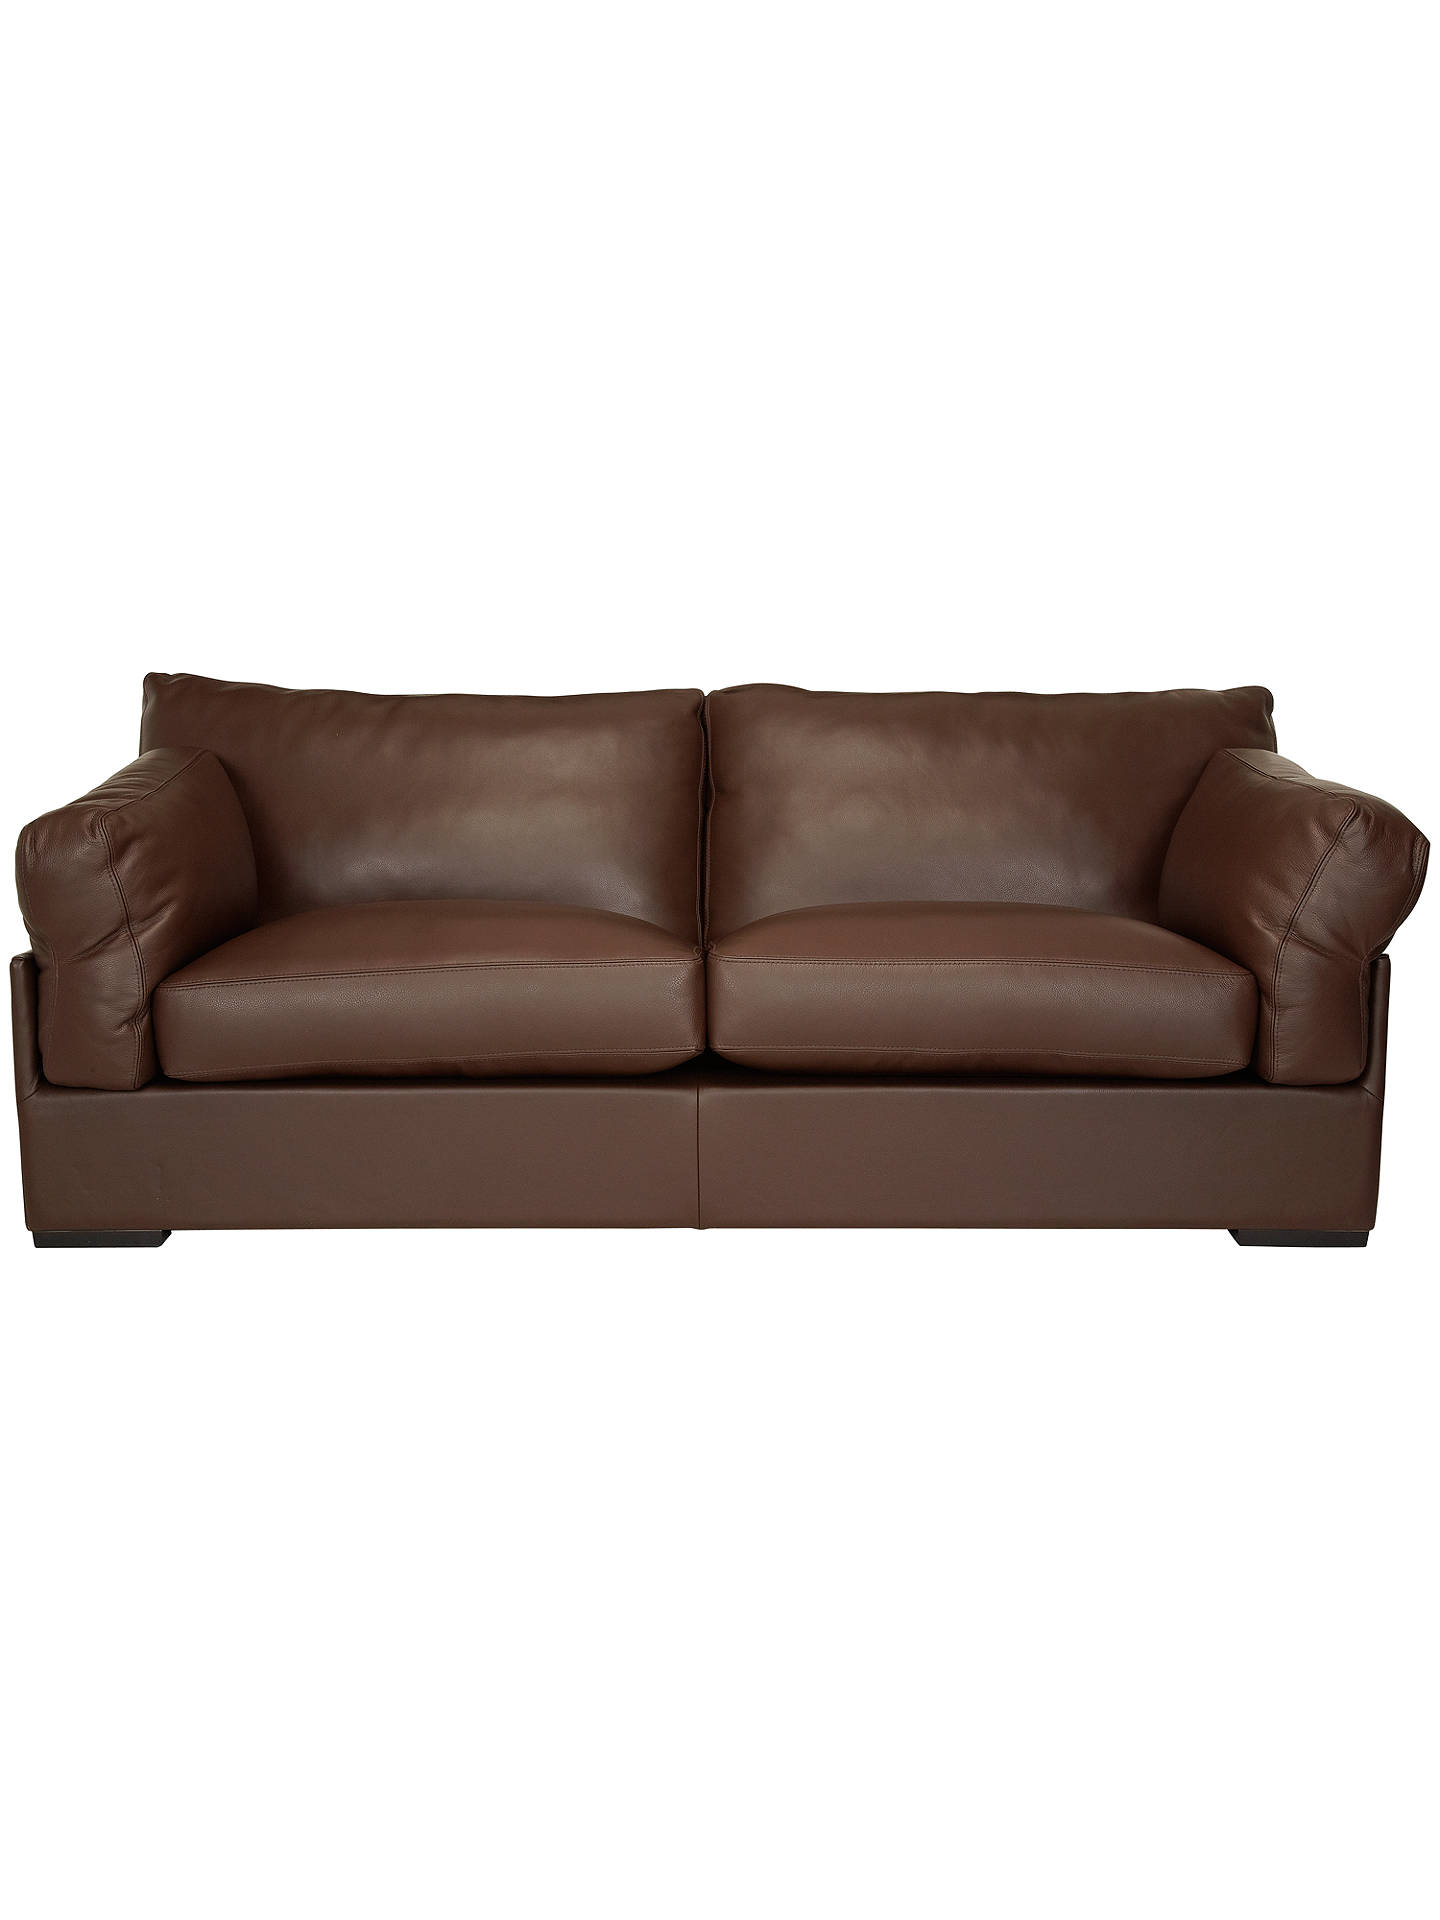 John Lewis Partners Java Leather Grand 4 Seater Sofa Nature Brown Online At Johnlewis